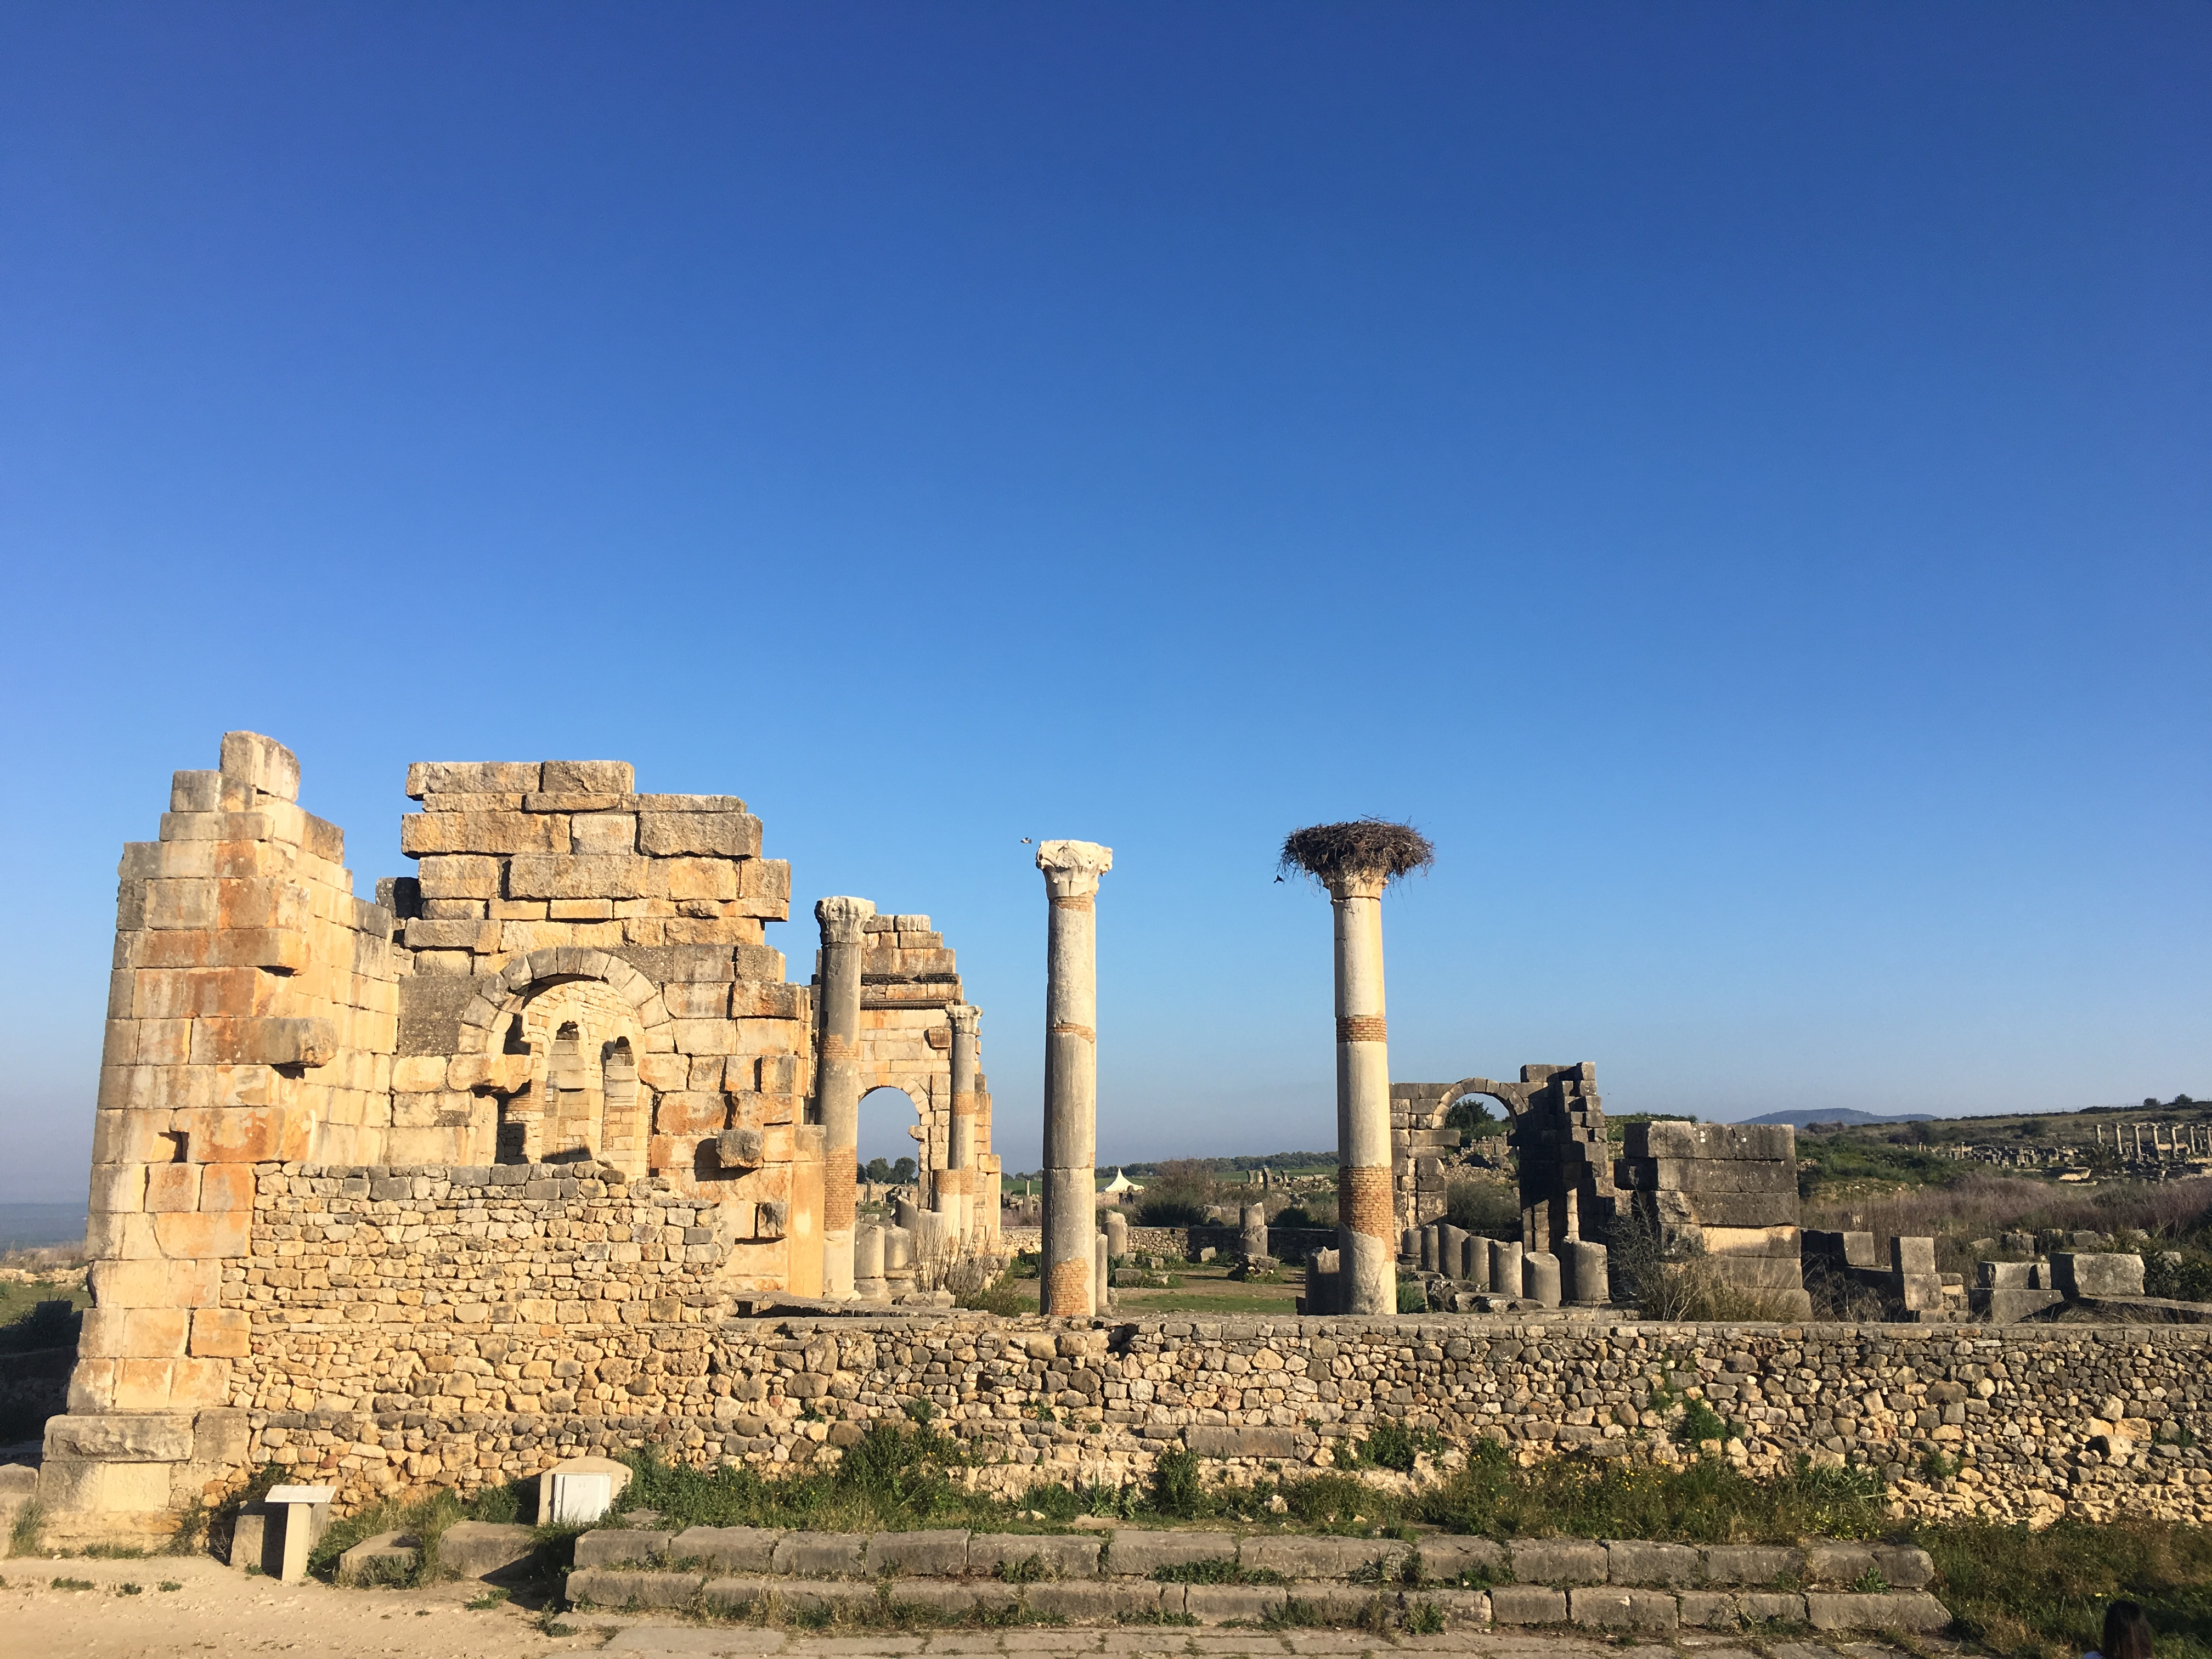 The ruins of the Roman city of Volubilis